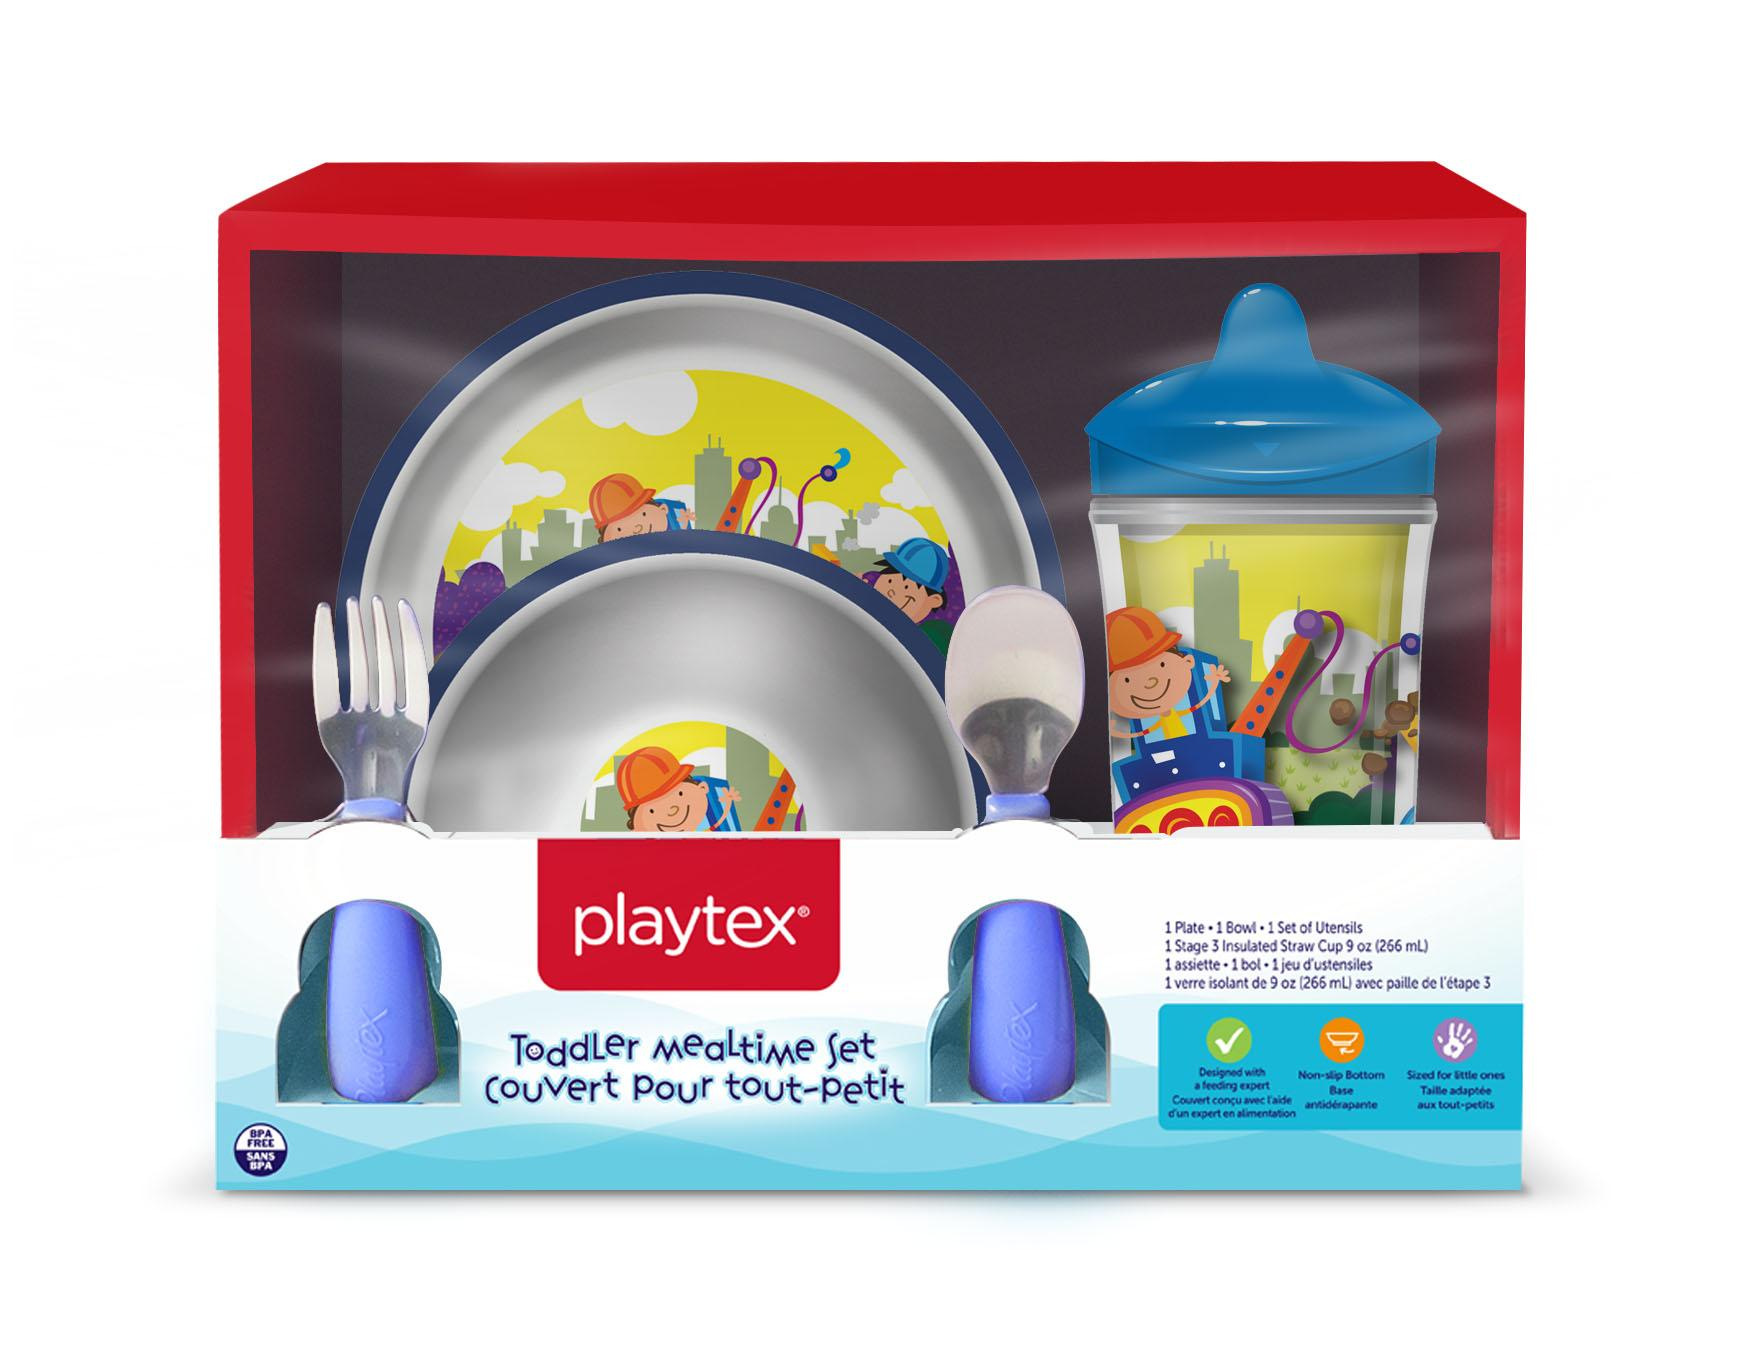 A Playtex Mealtime set (CPSC)<p></p>